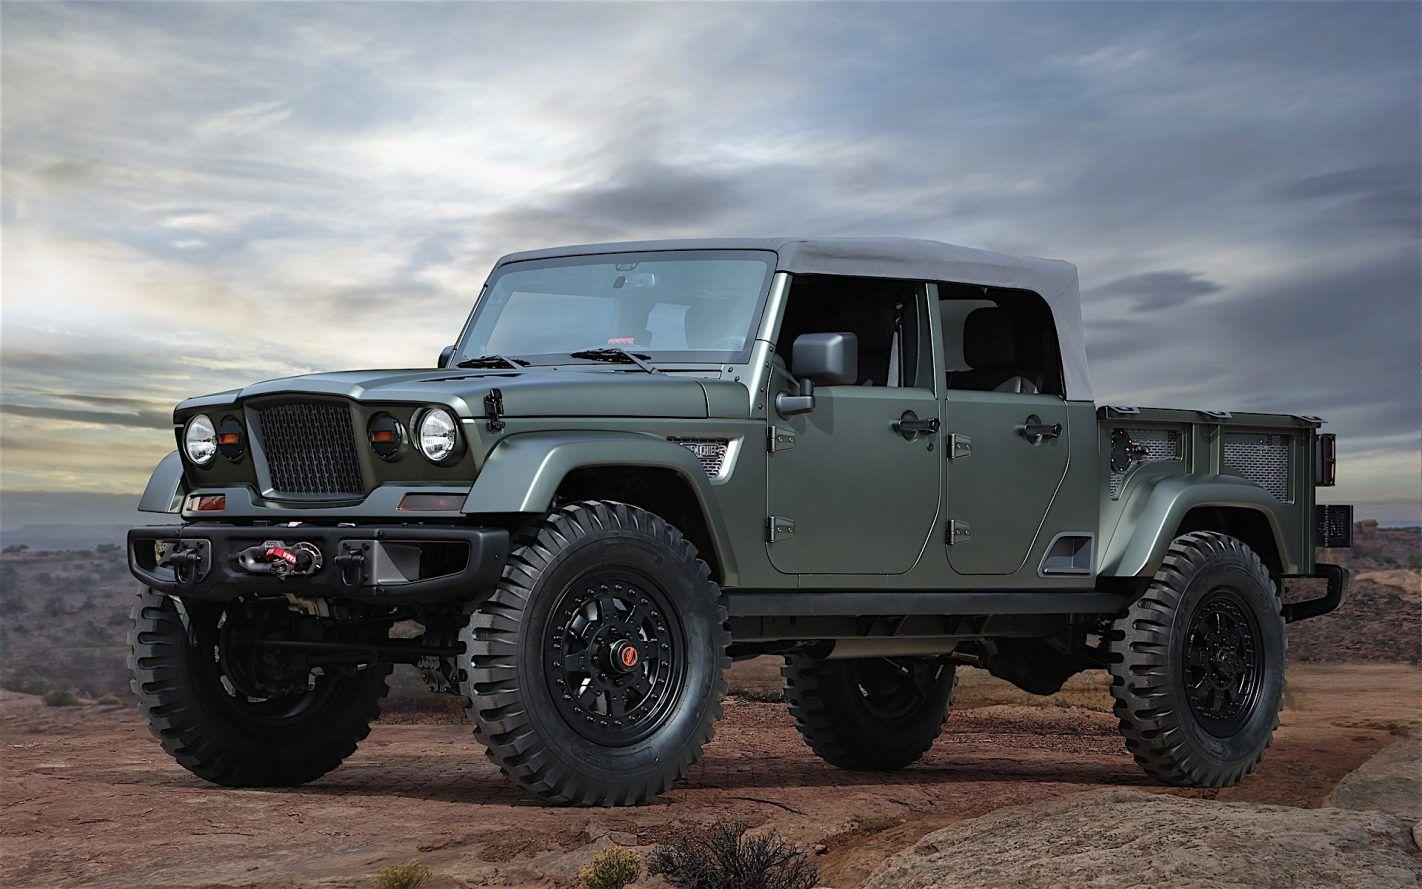 2019 Jeep Gladiator Side High Resolution Wallpaper | Auto Car Rumors